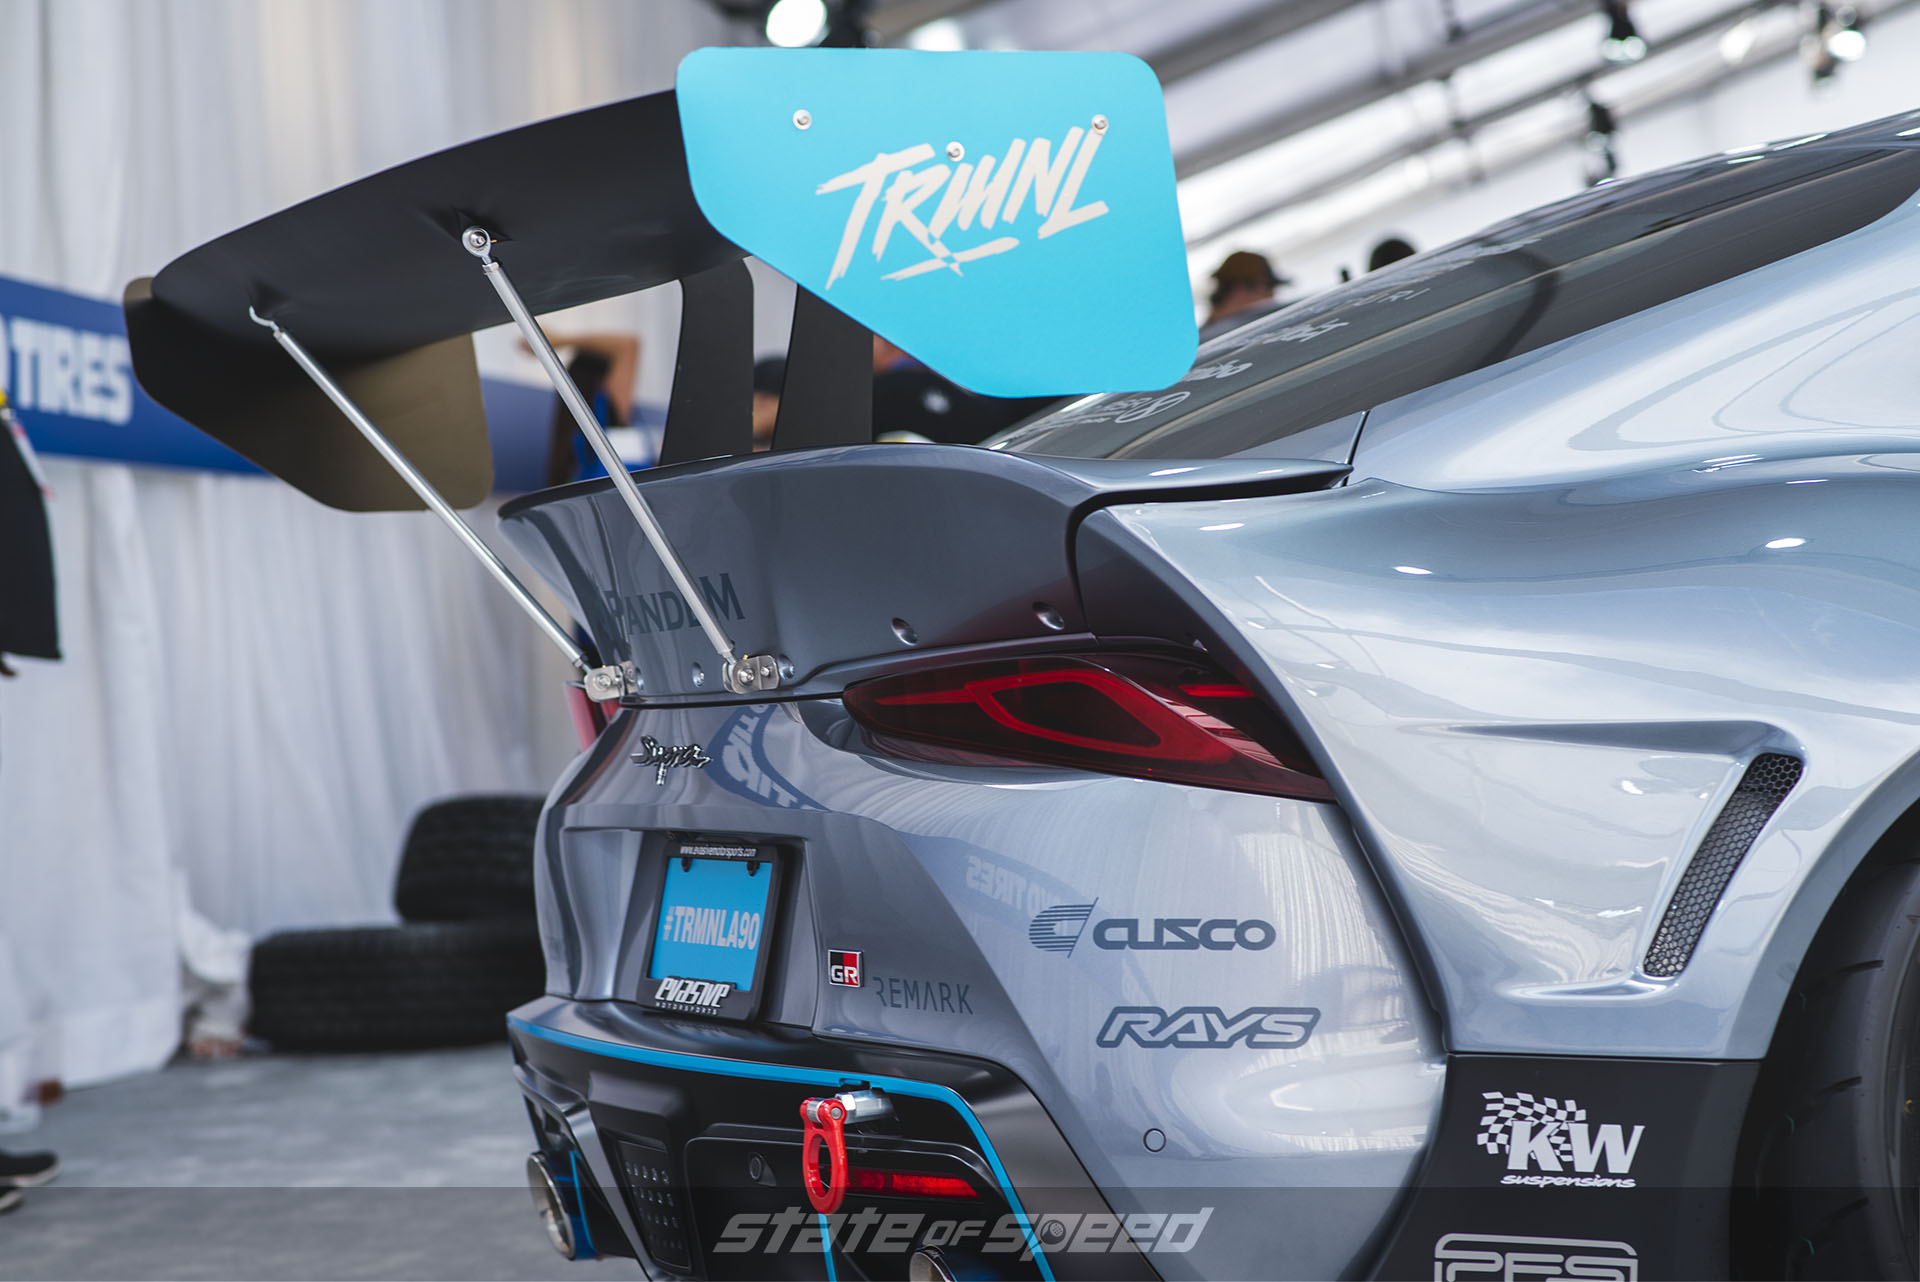 Large adjustable GT wing